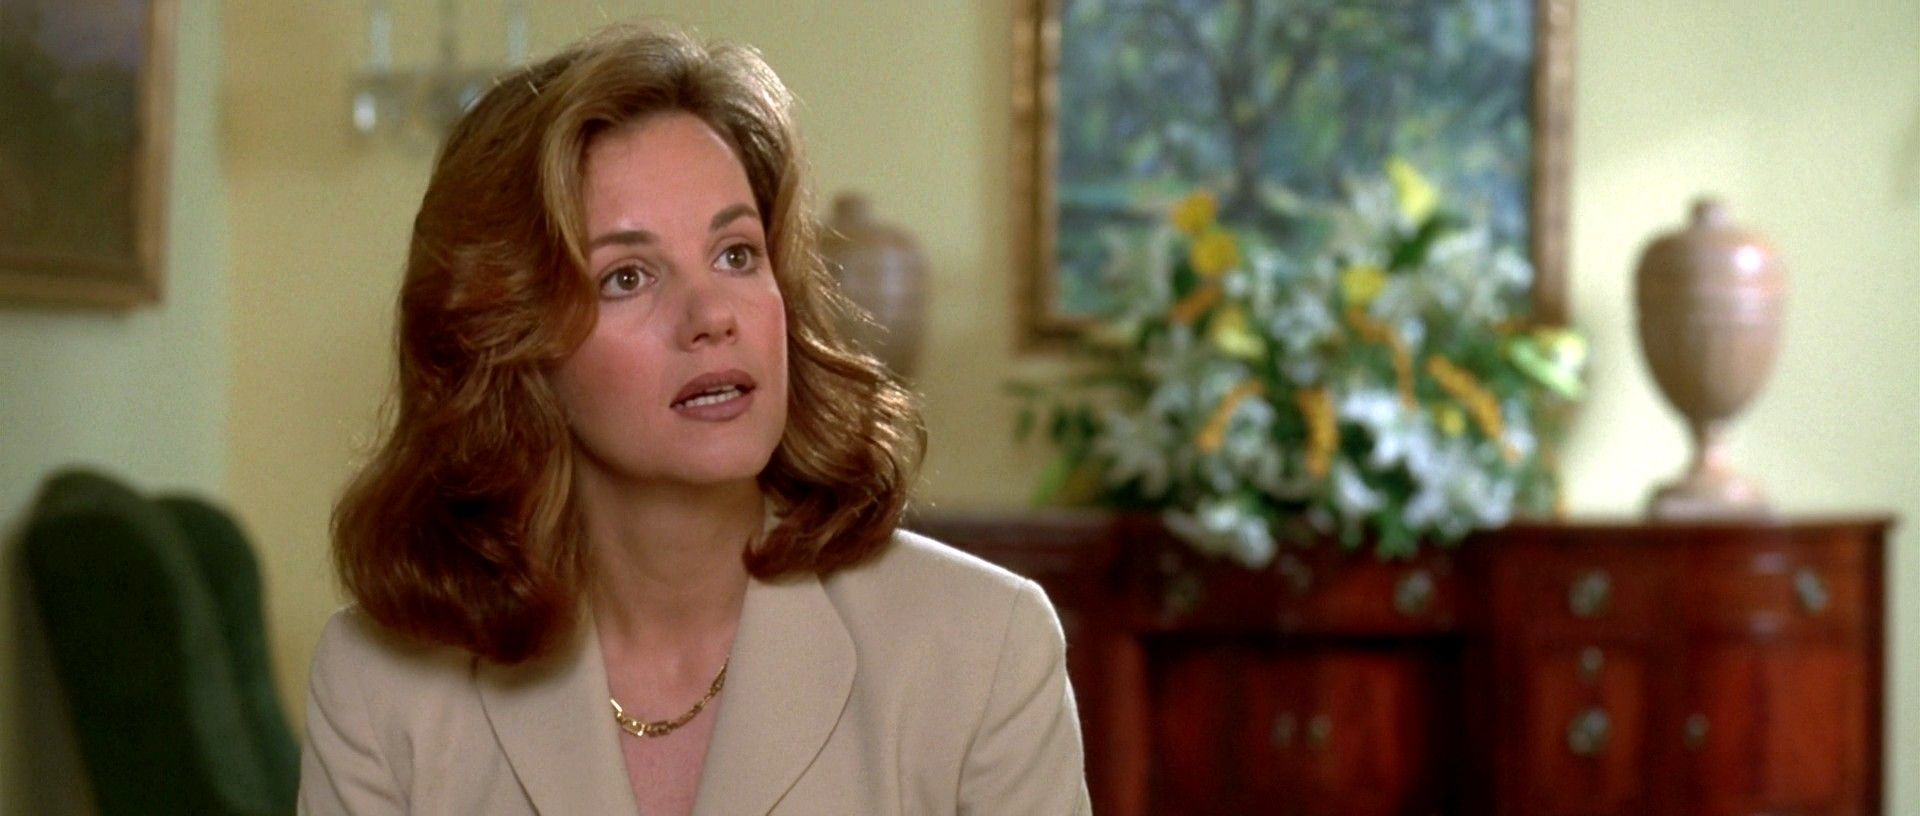 Margaret Colin   On The Screen - Movie Scenes from Movies ...